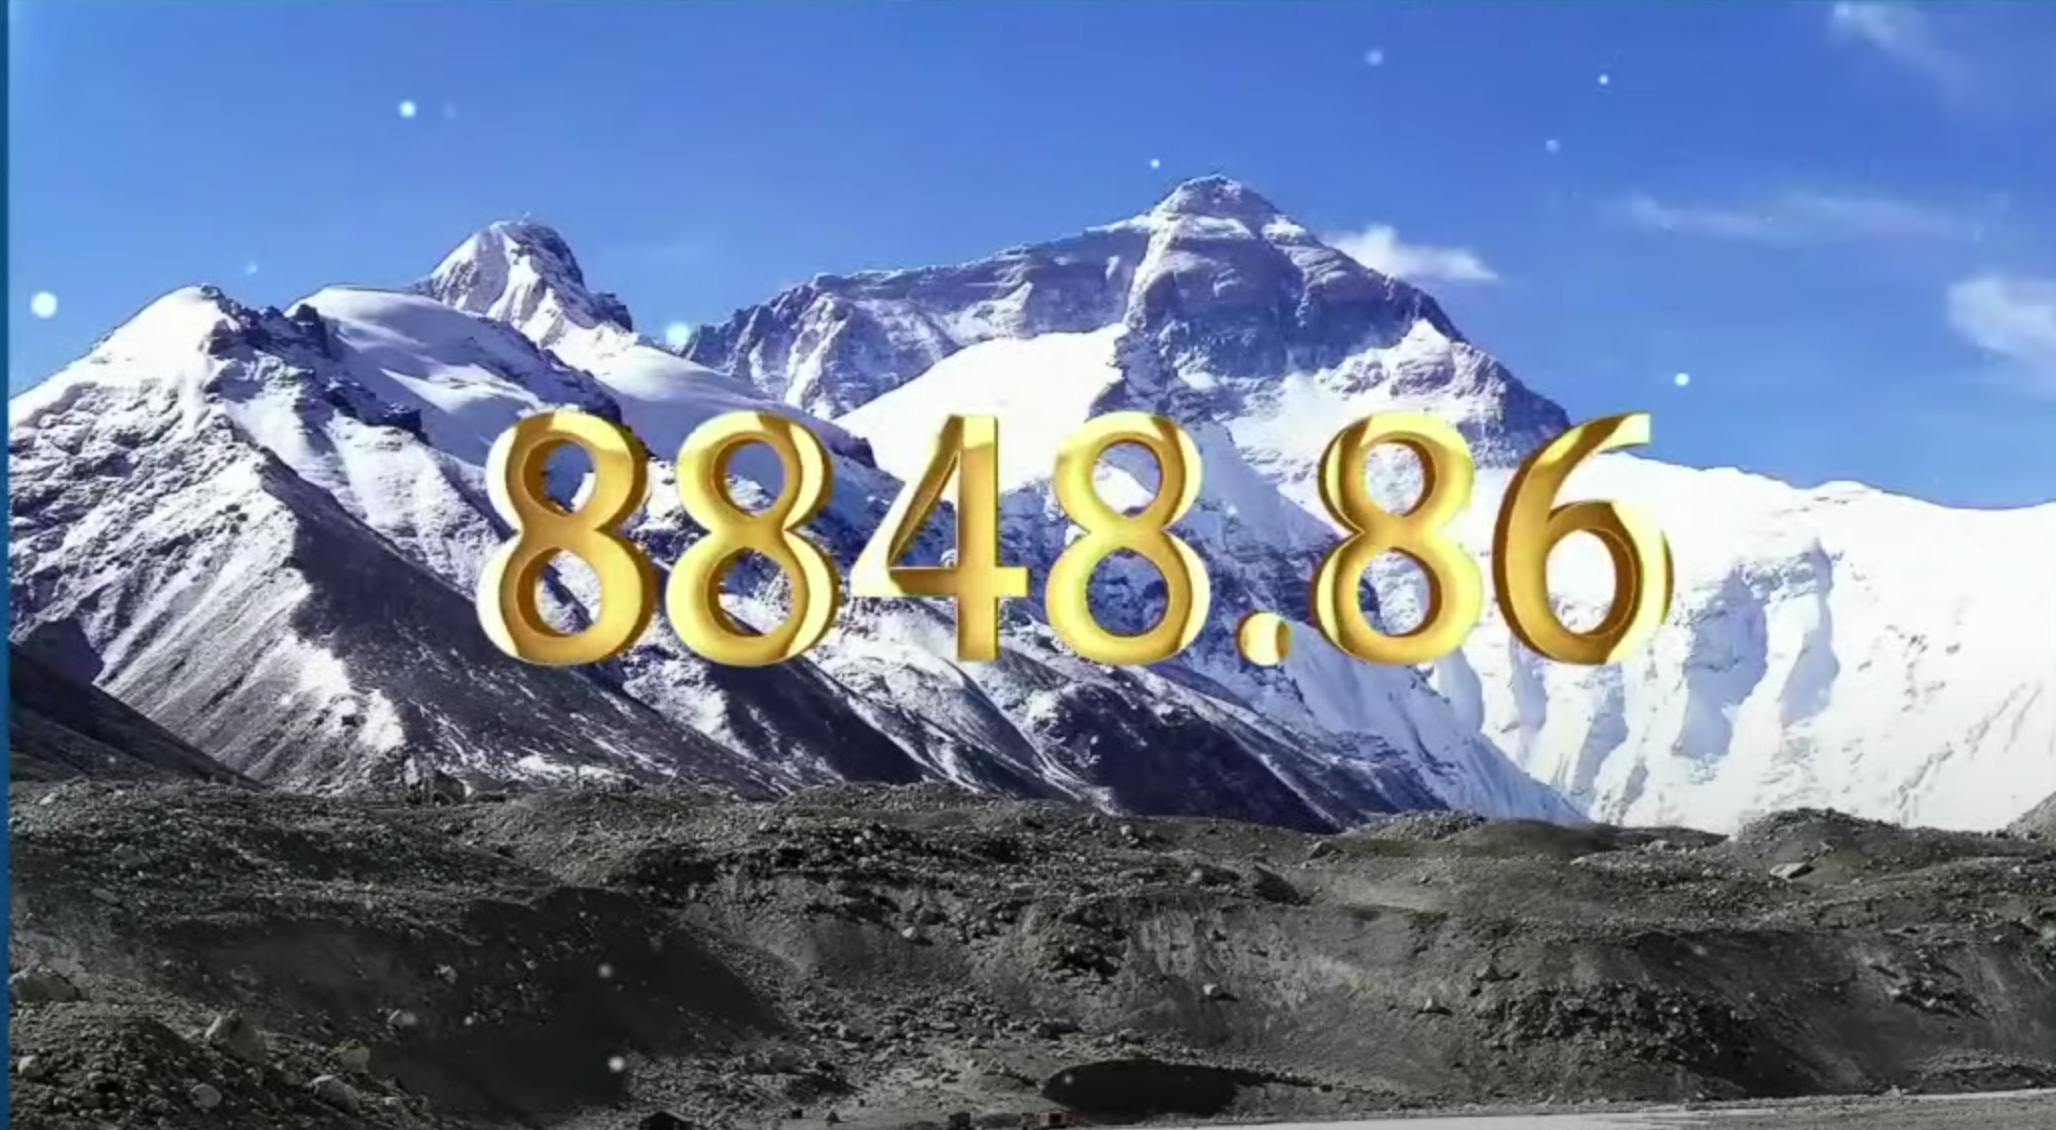 everest-new-height.png